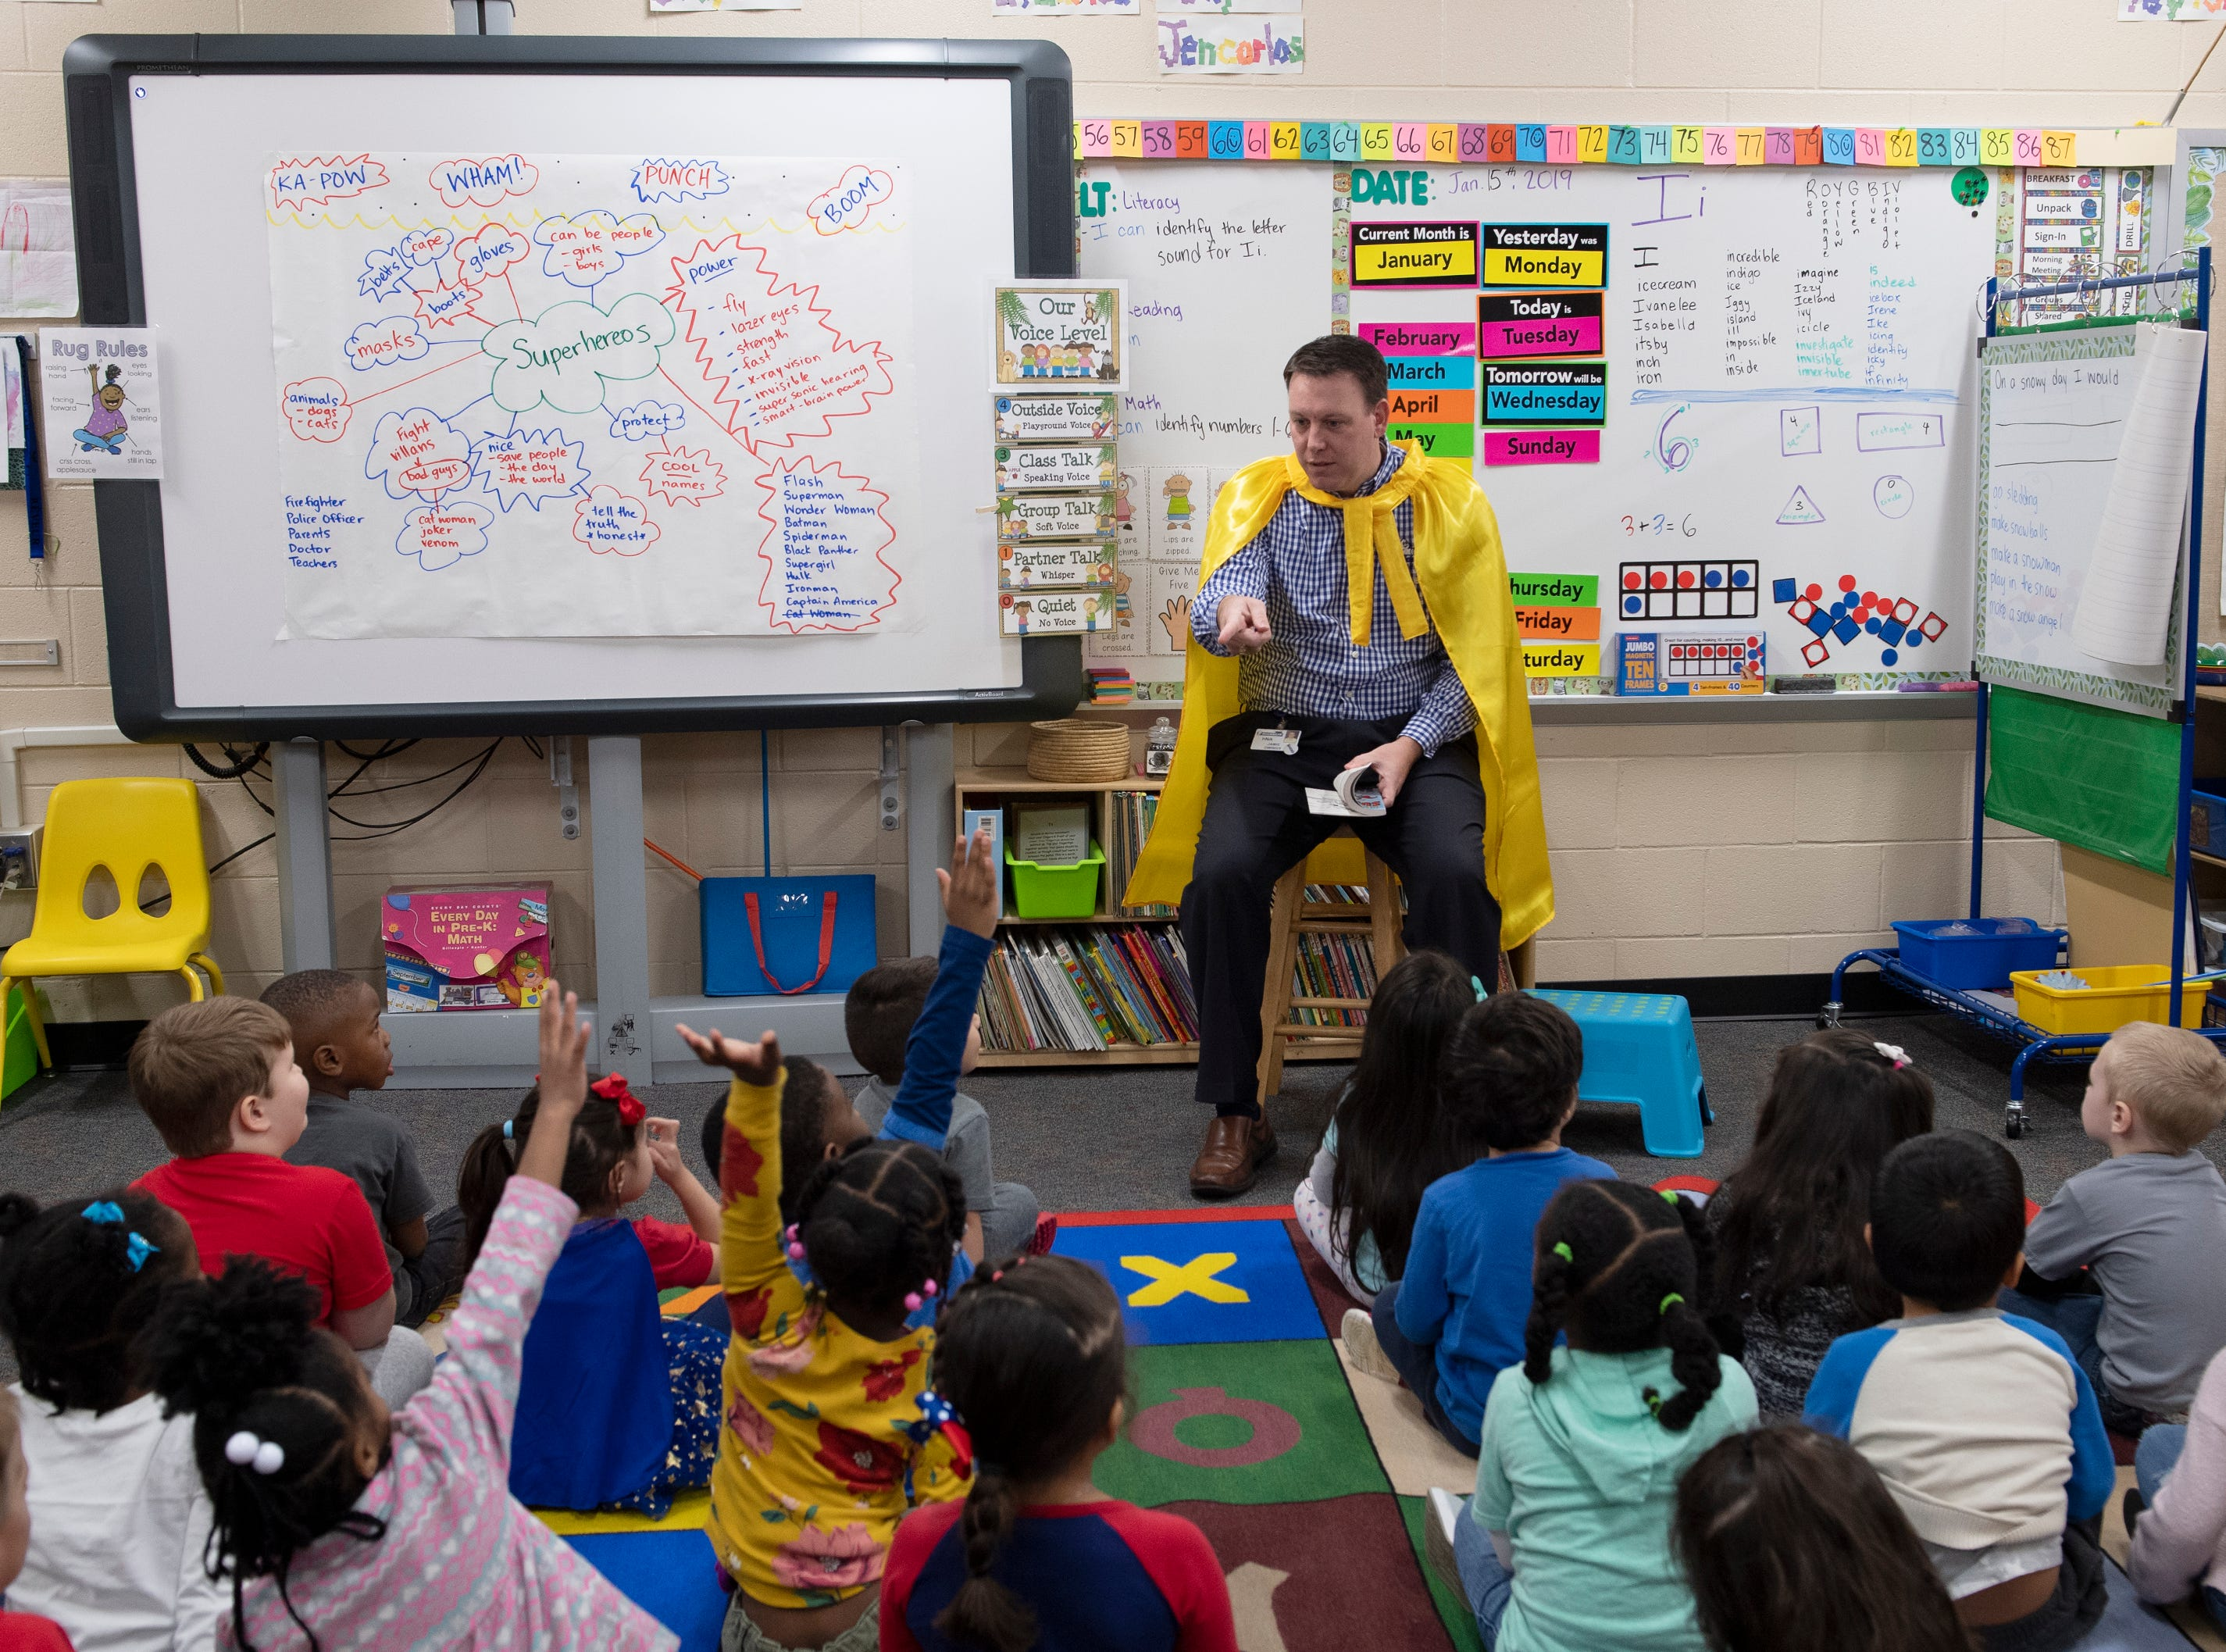 Jamie Owings, a senior compensation analyst at Michelin, reads an excerpt from The Curse of the Bologna Sandwich to students at East North Street Academy Tuesday, Jan. 15, 2019. Michelin donated copies of the book for students in the school. Owings has been volunteering with the school for 10 years.